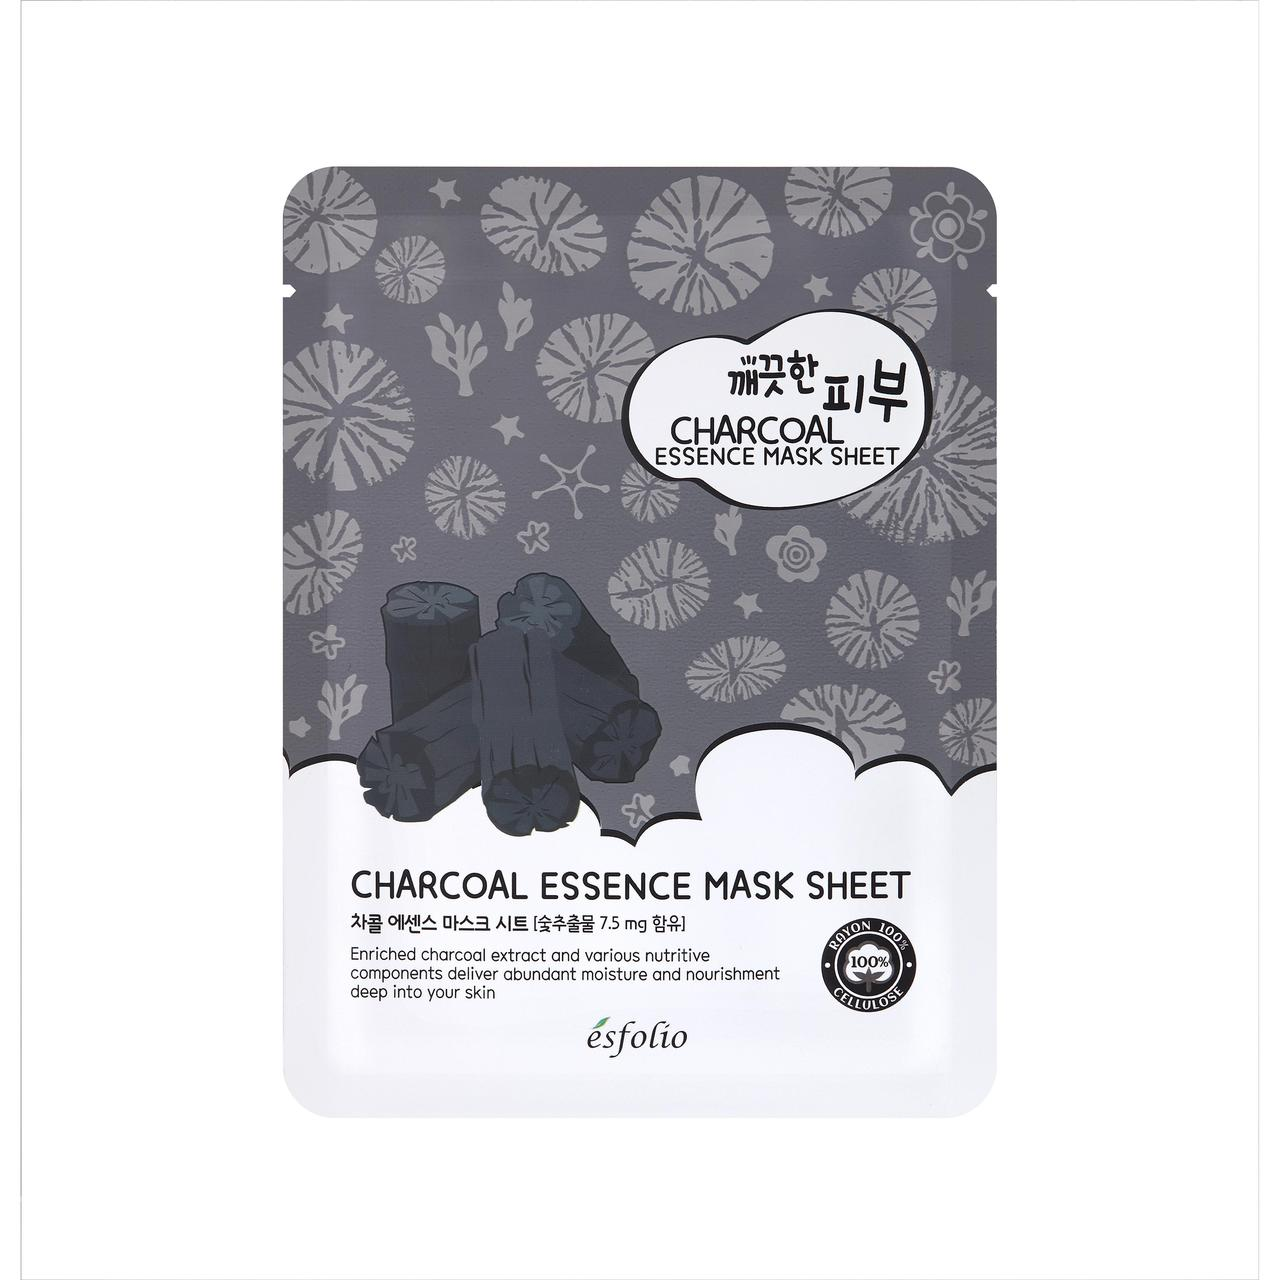 Тканевая маска c углем Esfolio Pure Skin Essence Charcoal Mask Sheet - 1шт